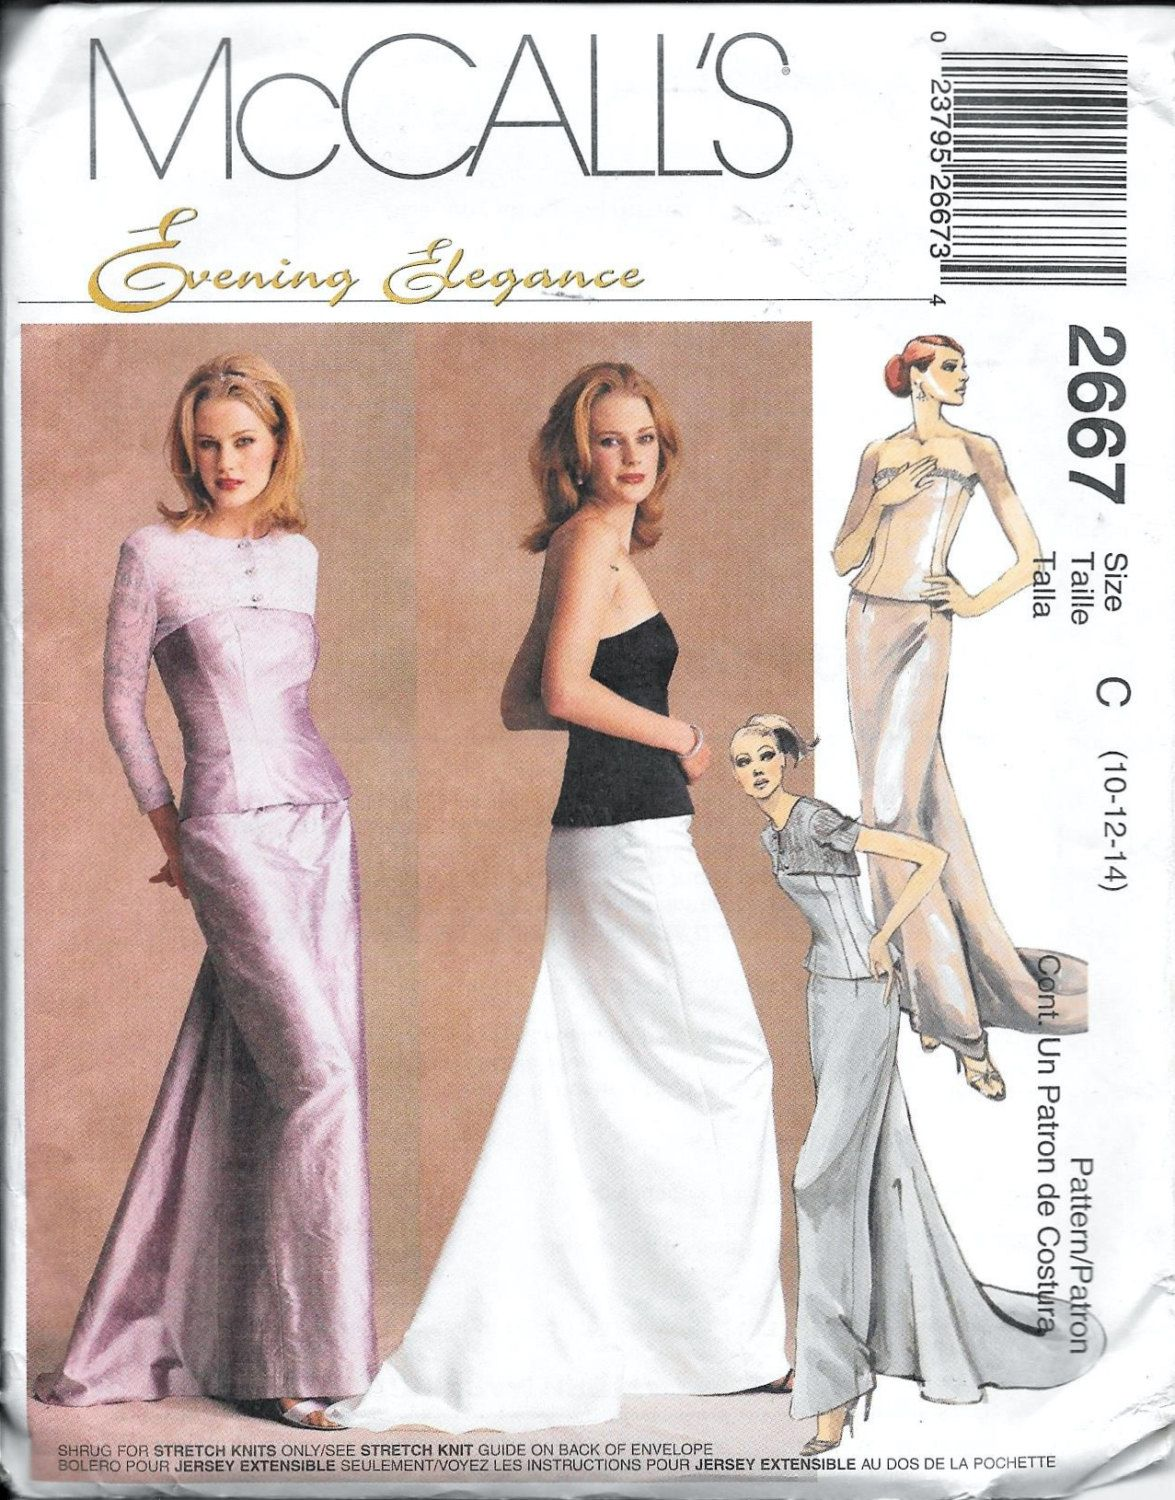 Mccalls 2667 evening gown shrug bustier skirt sewing pattern mccalls 2667 evening gown shrug bustier skirt sewing pattern uncut prom dress size 10 12 jeuxipadfo Gallery